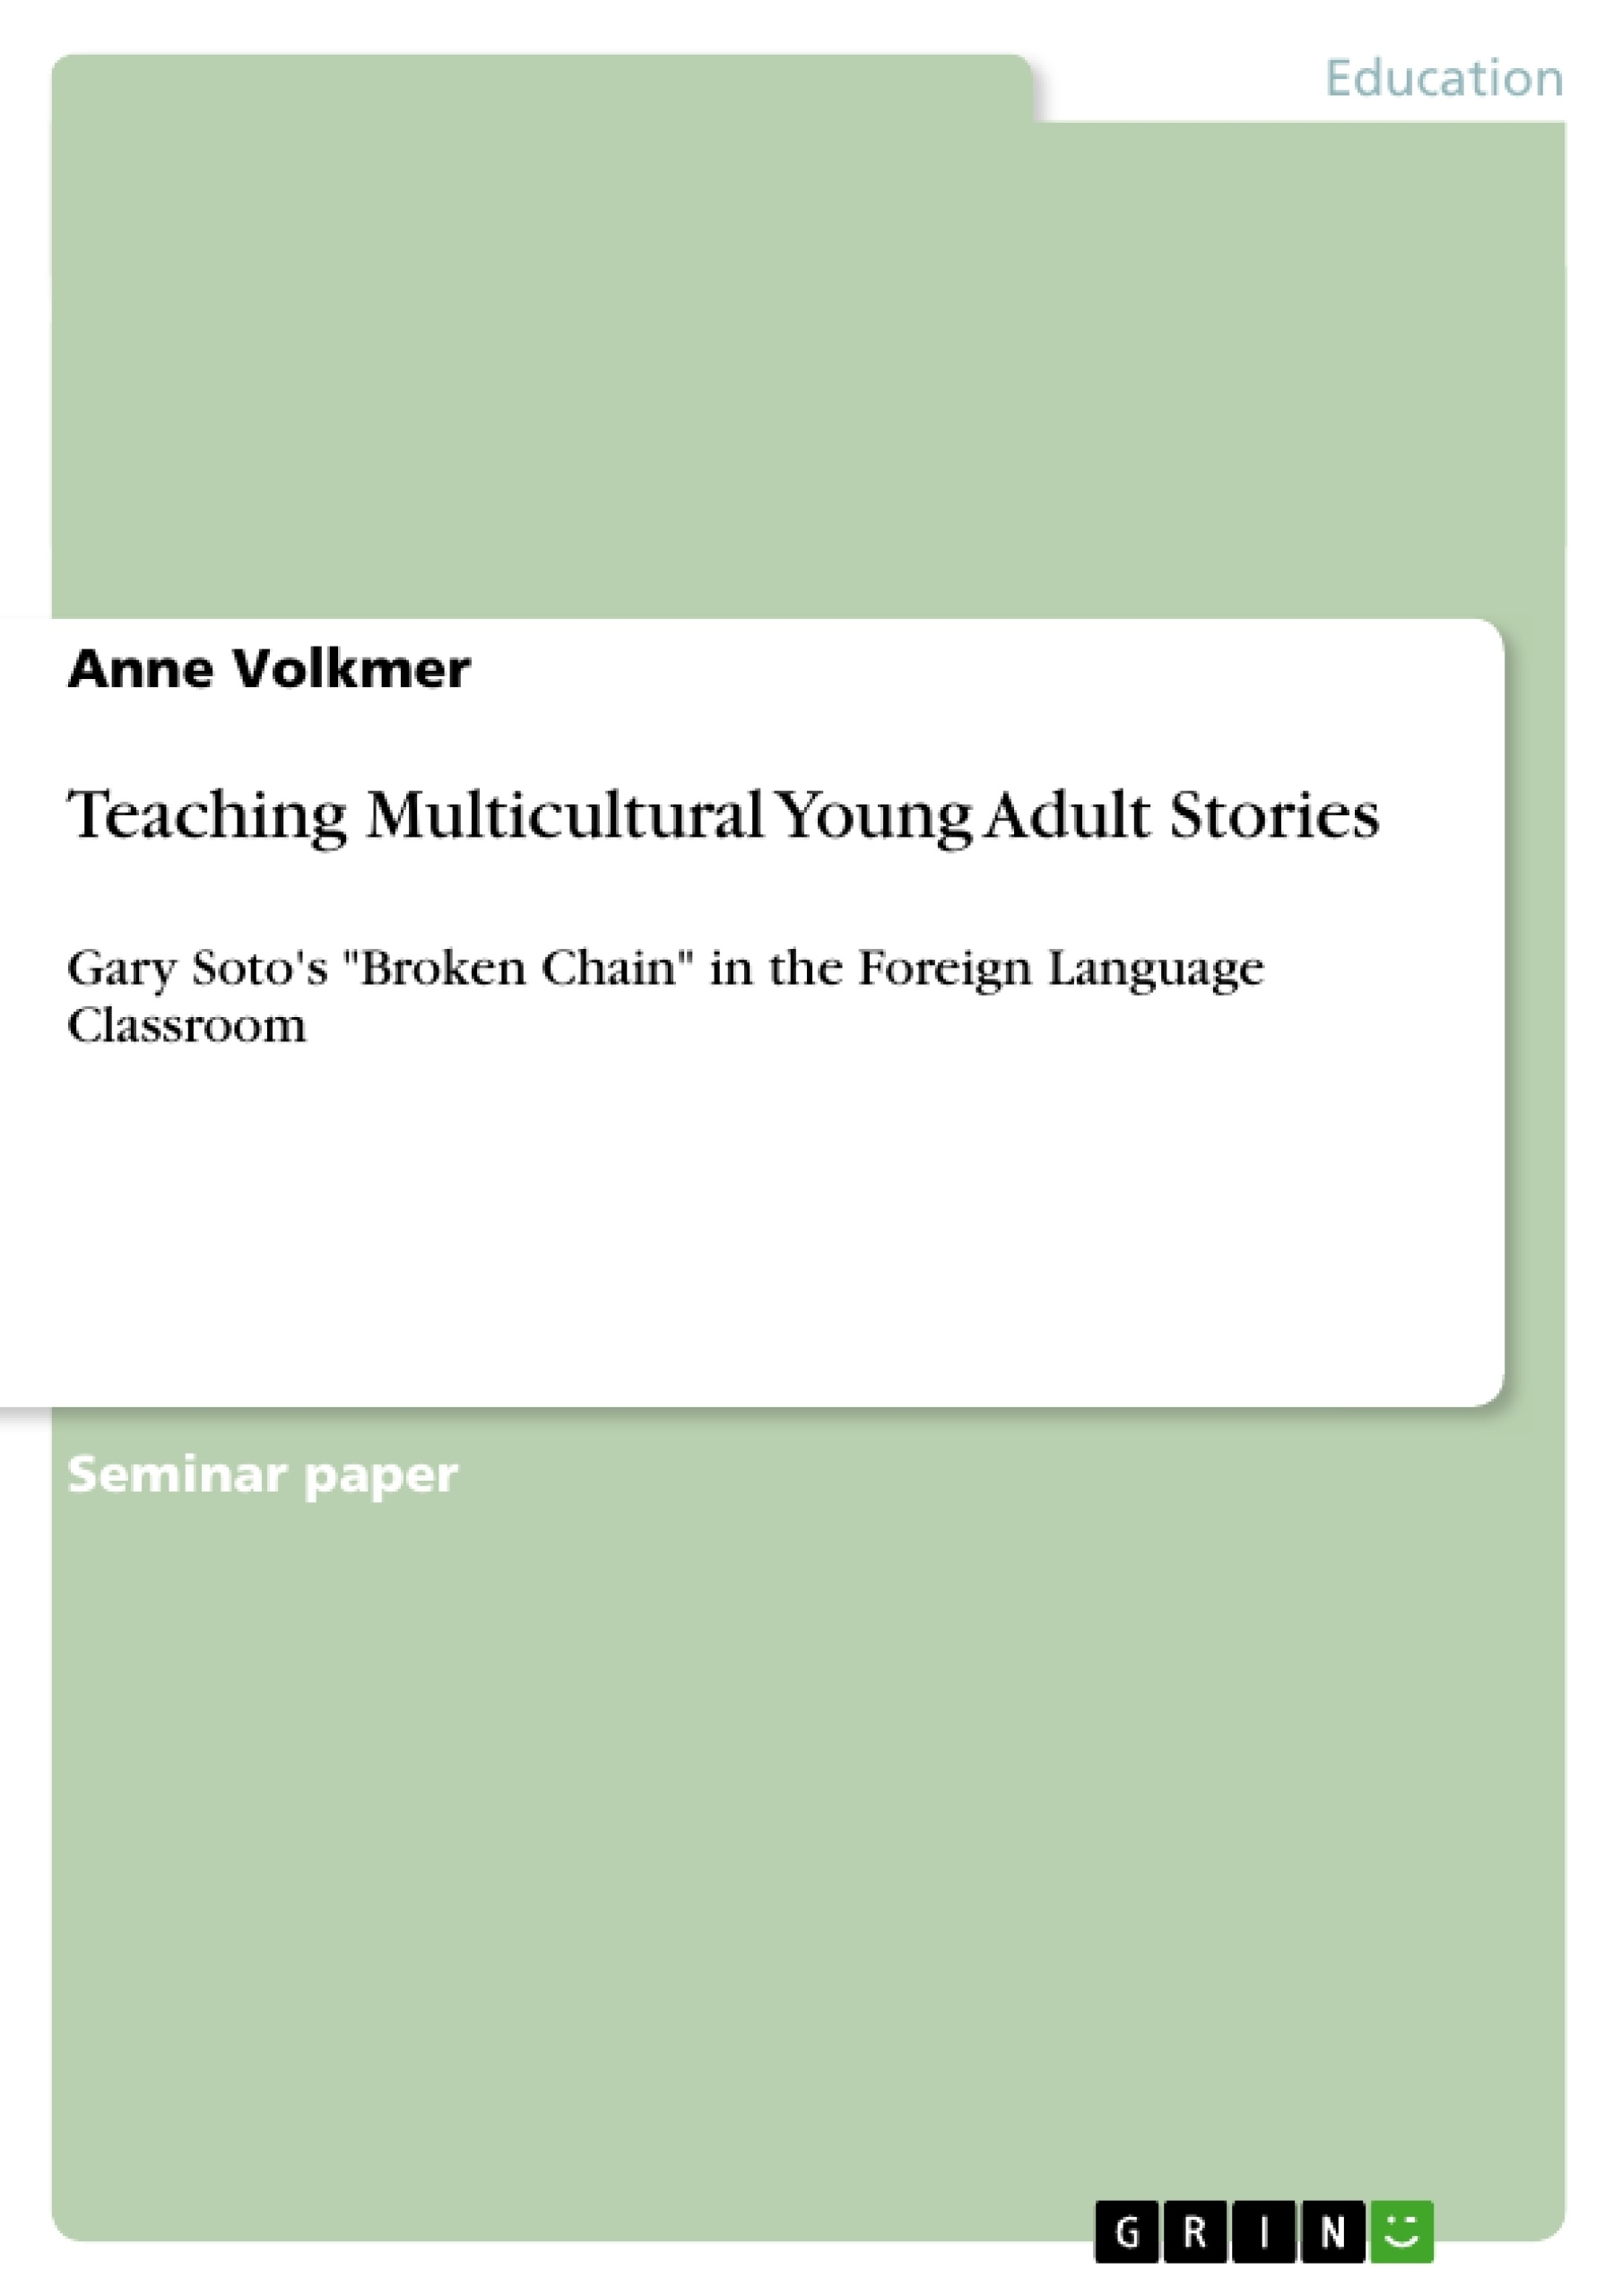 Title: Teaching Multicultural Young Adult Stories